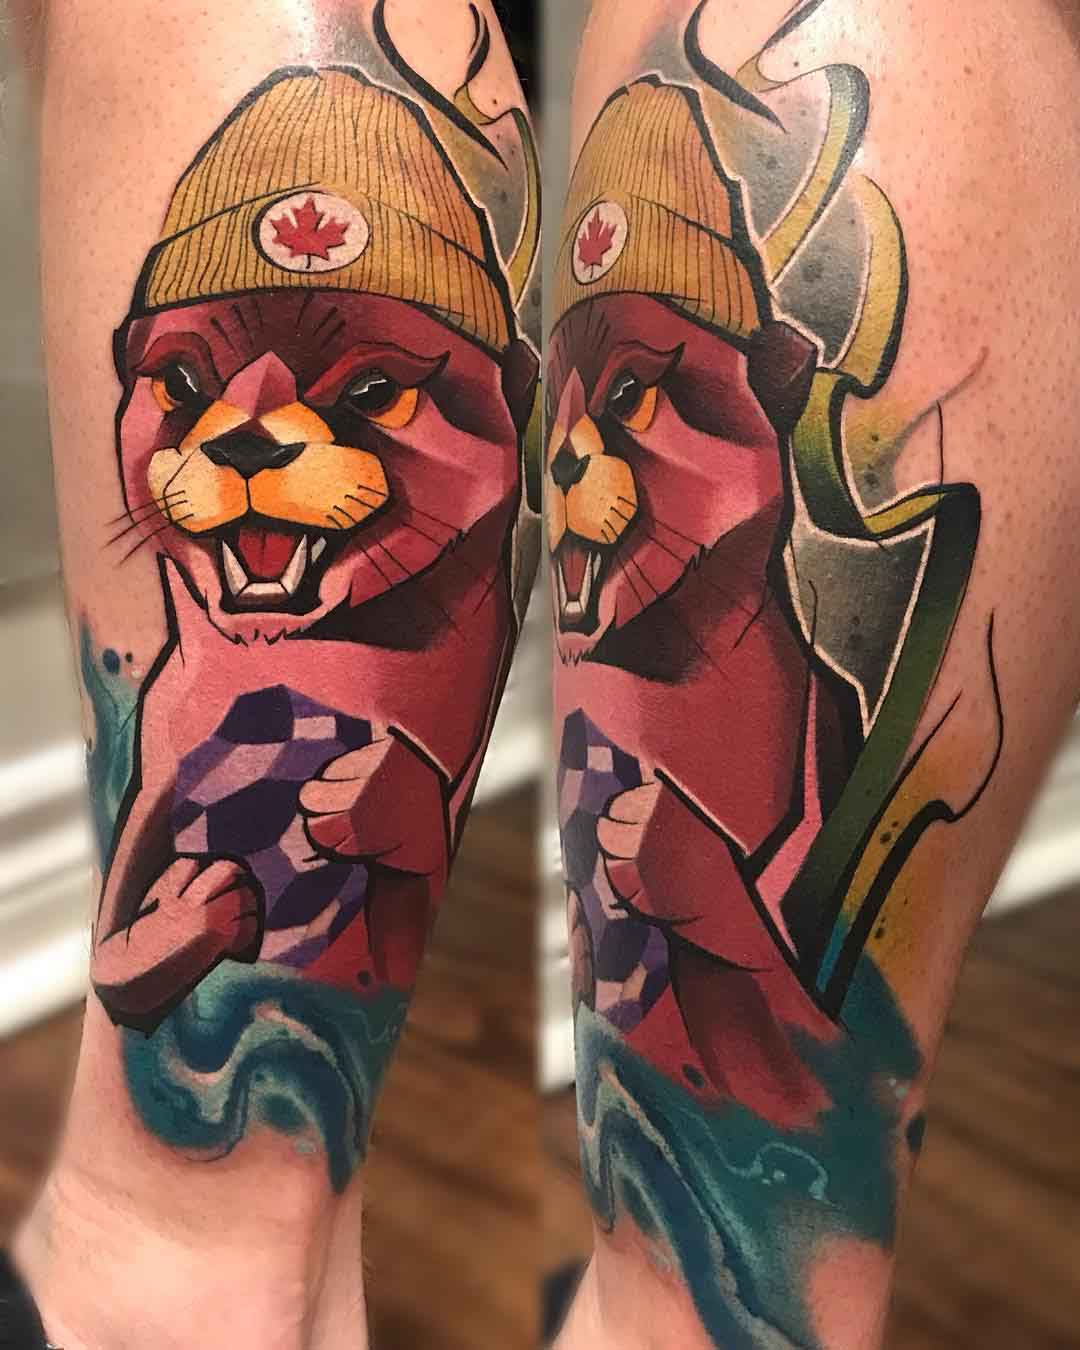 arm tattoo otter in hat